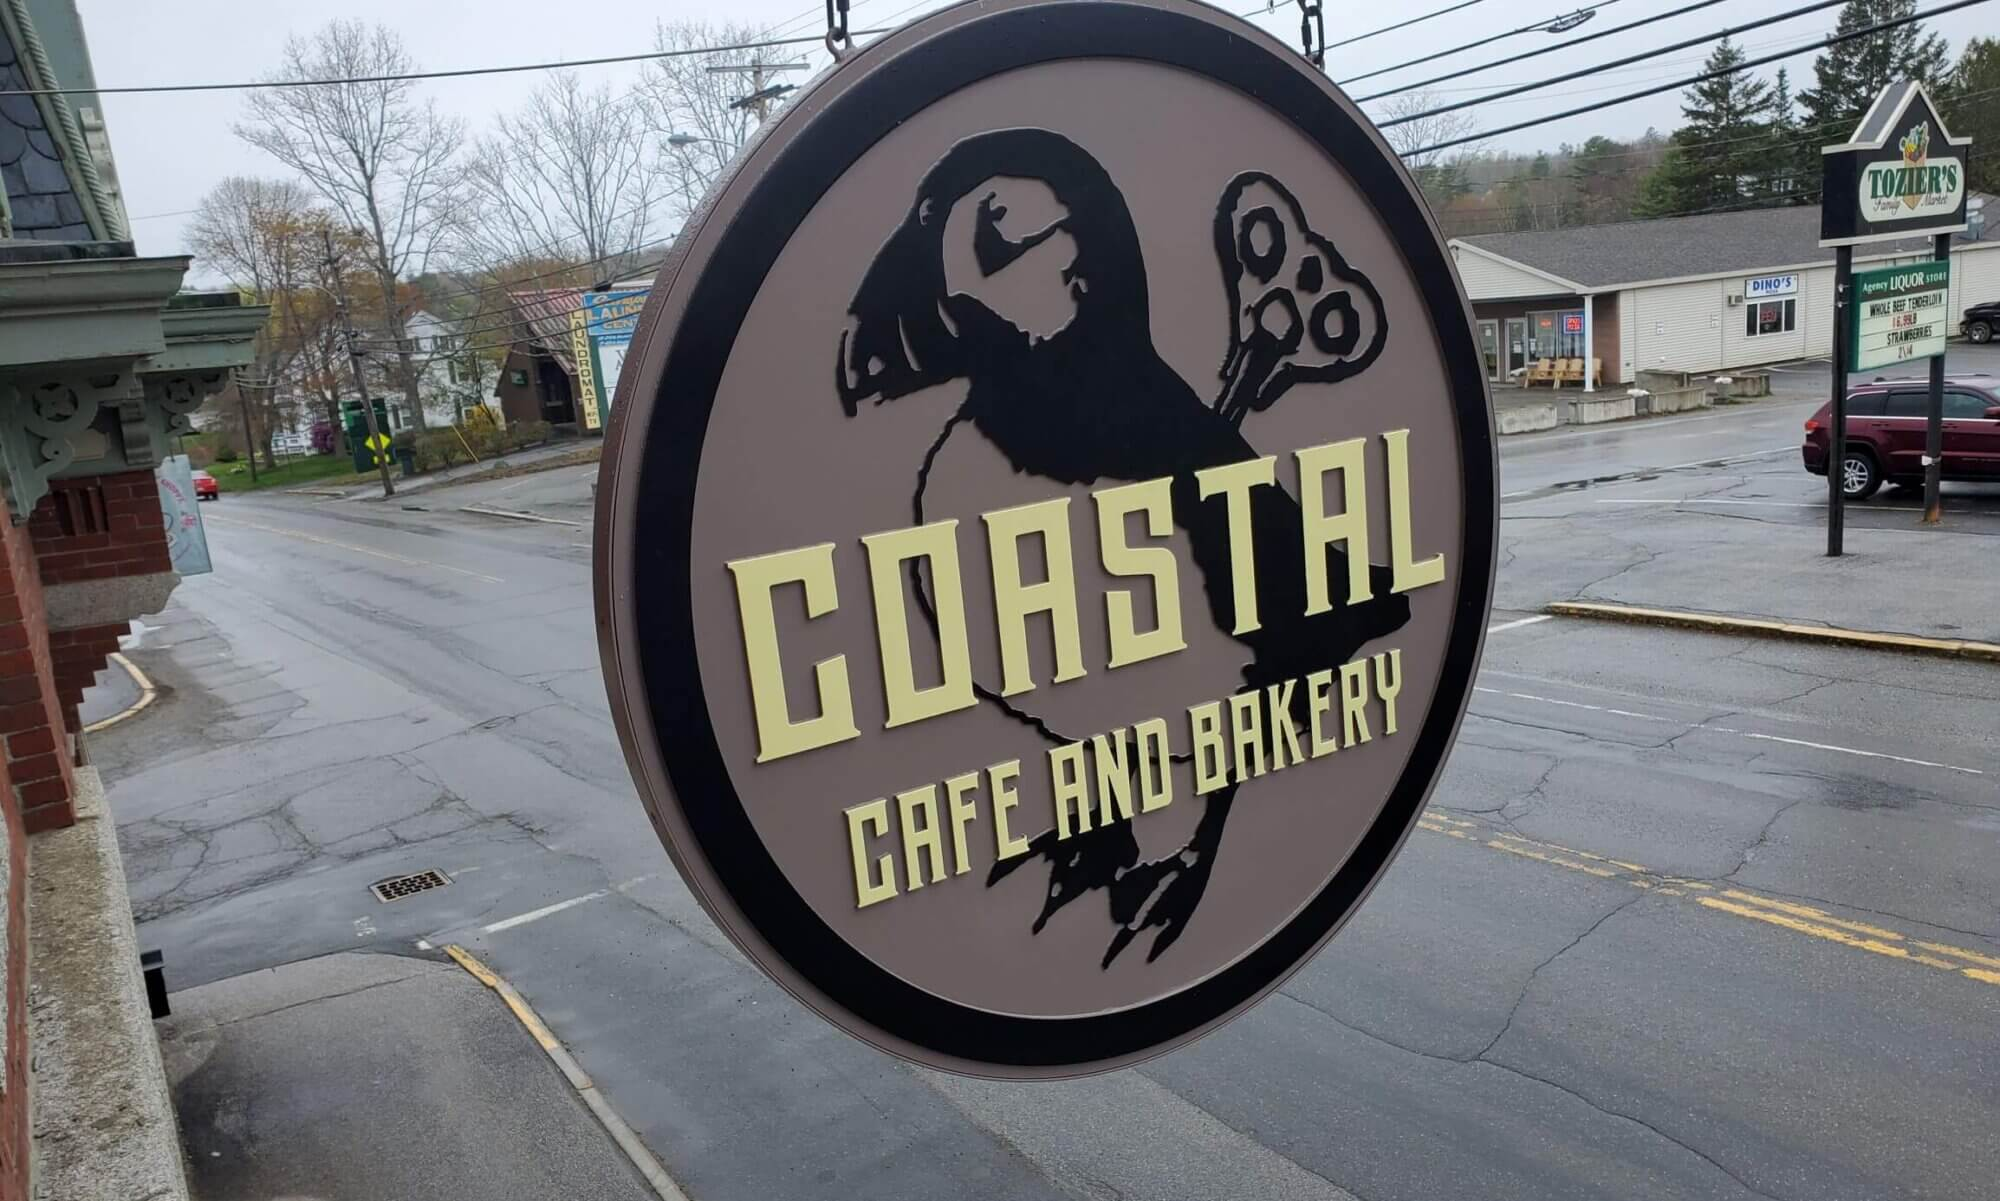 Coastal Cafe and Bakery